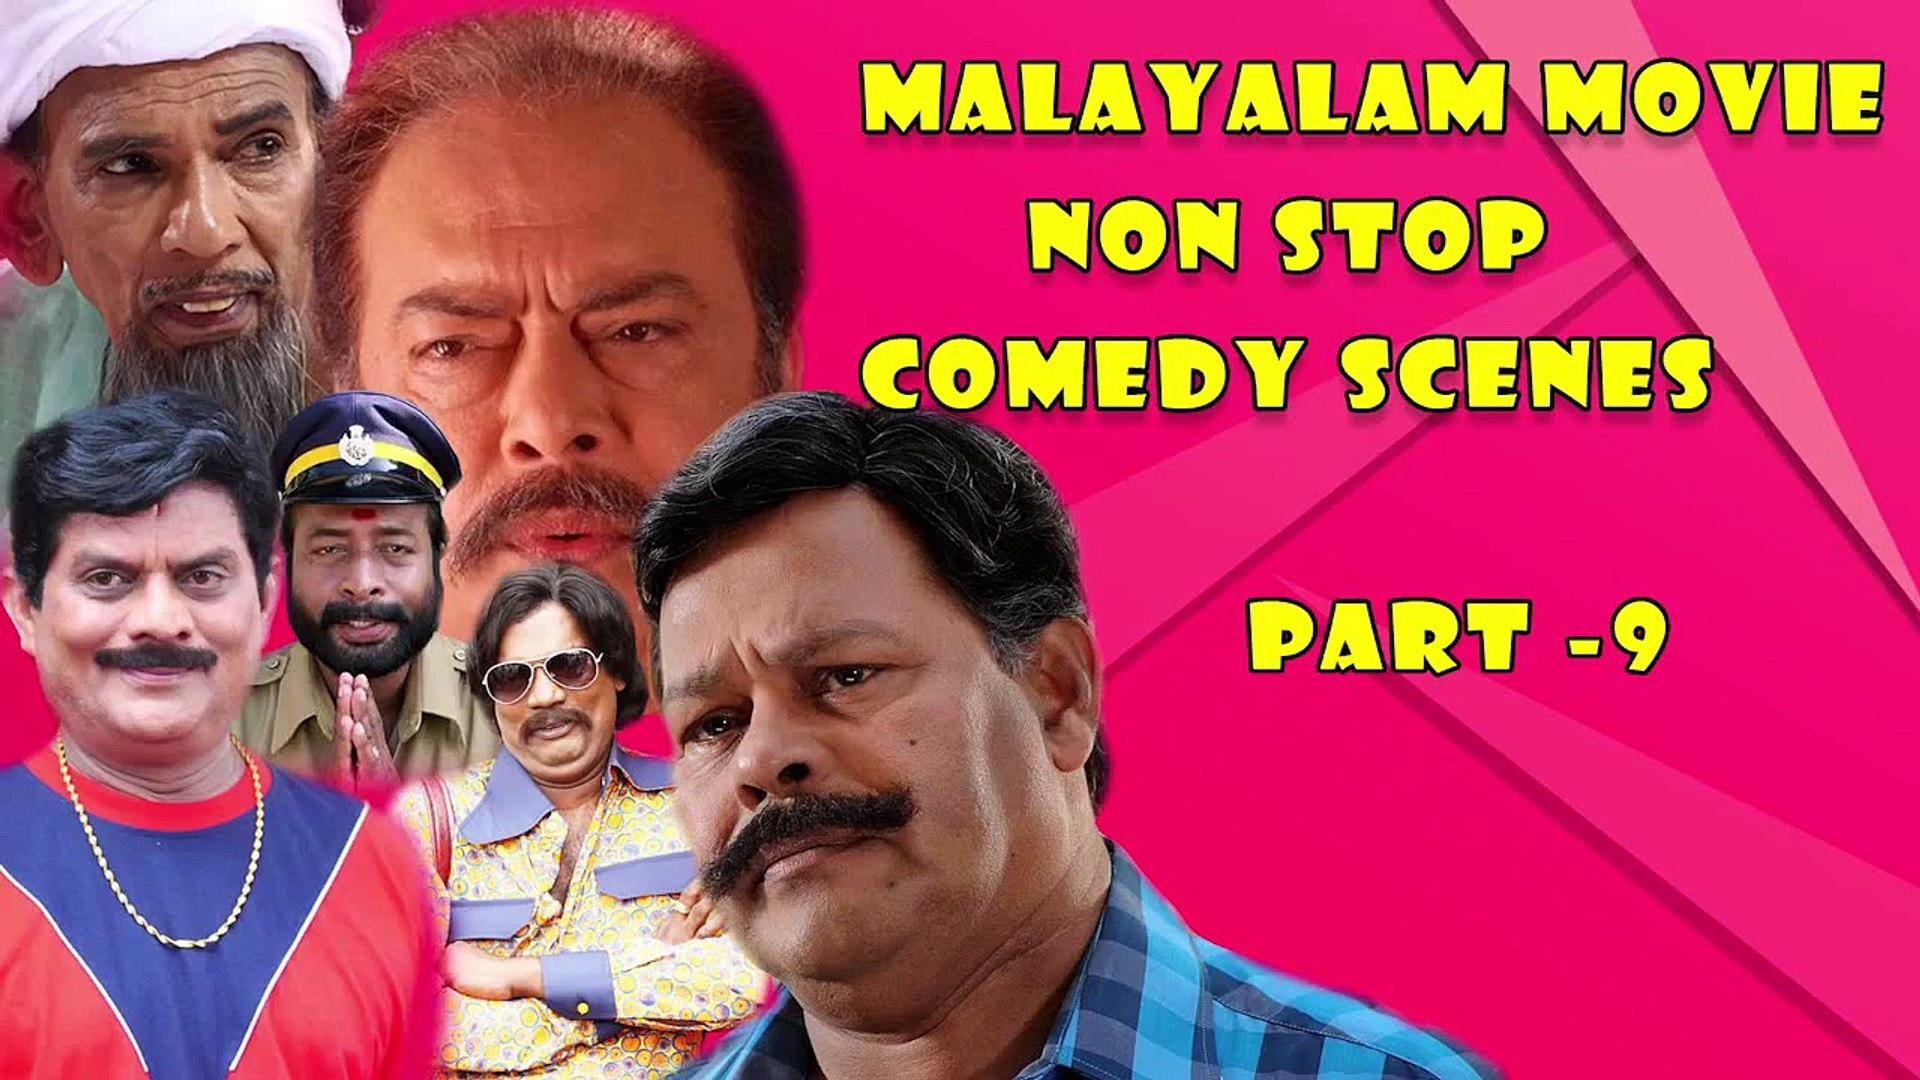 Malayalam Movie Non Stop Comedy Scenes 9 | Malayalam Comedy Scenes | Malayalam Movie Comed